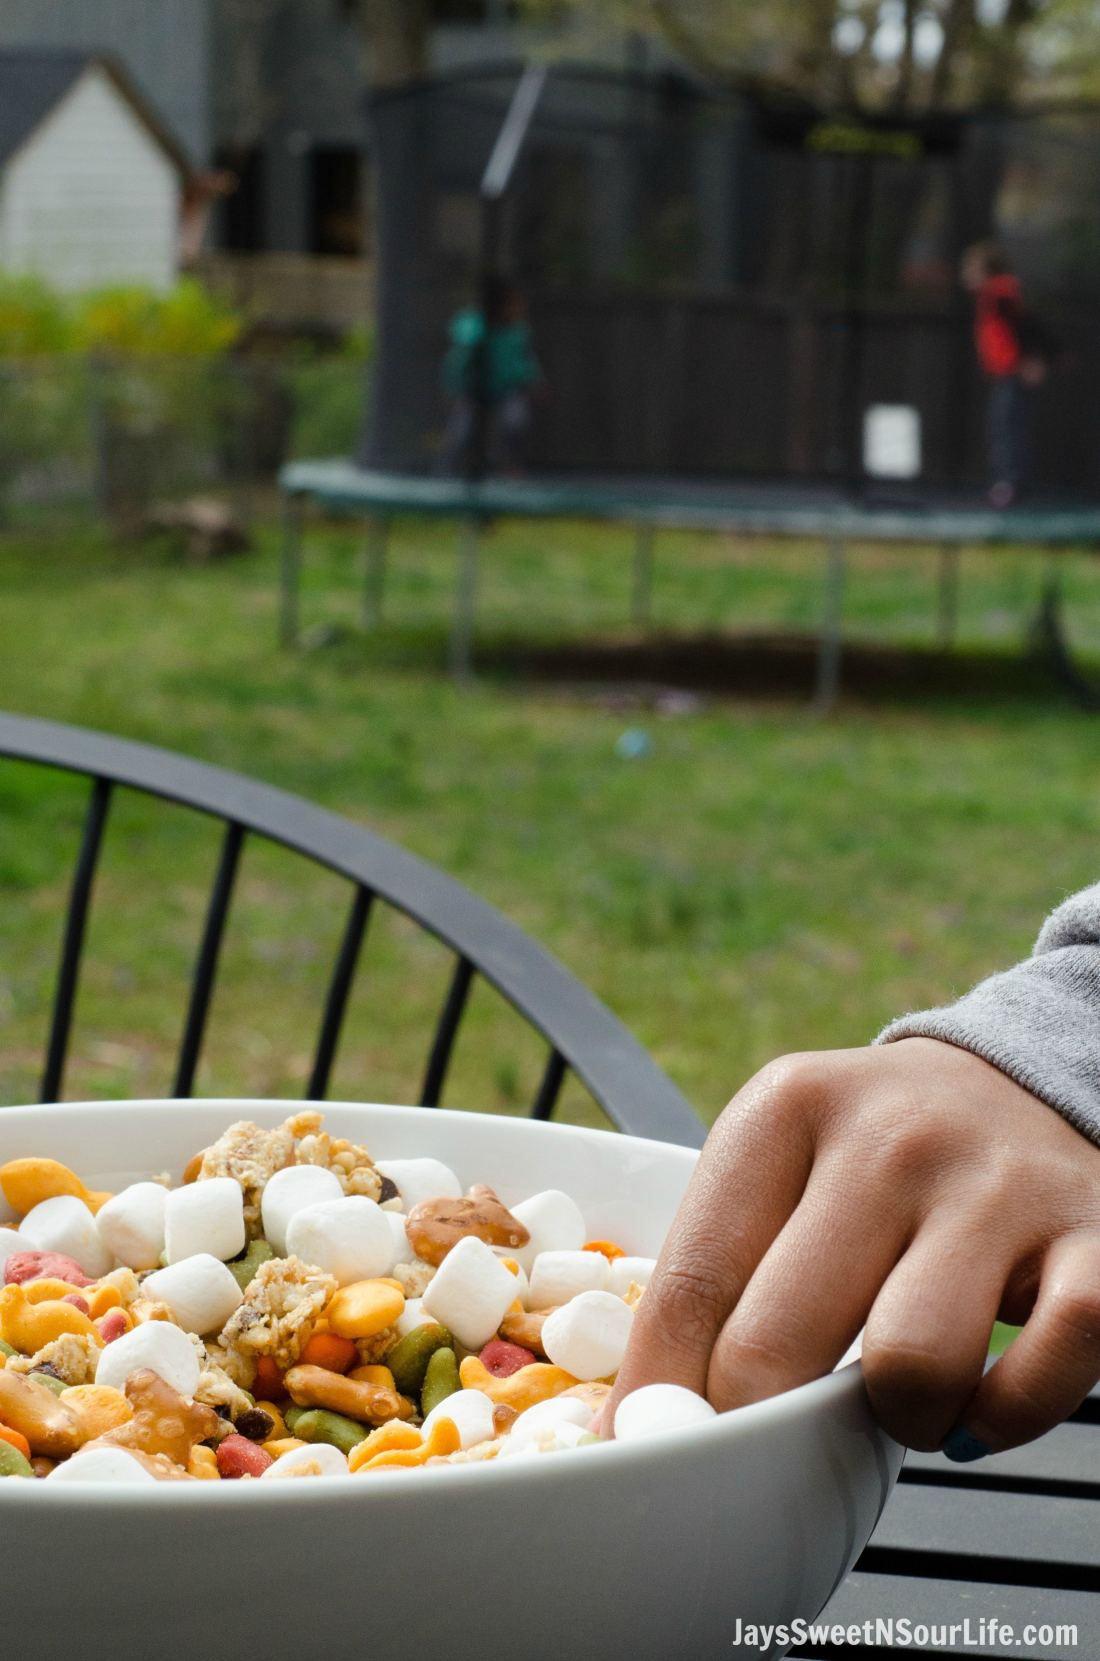 Goldfish Trail mix is the perfect on the go snack for famlies. Enjoy your trailmix in a large serving bowl for the whole family to enjoy in your own backyard.